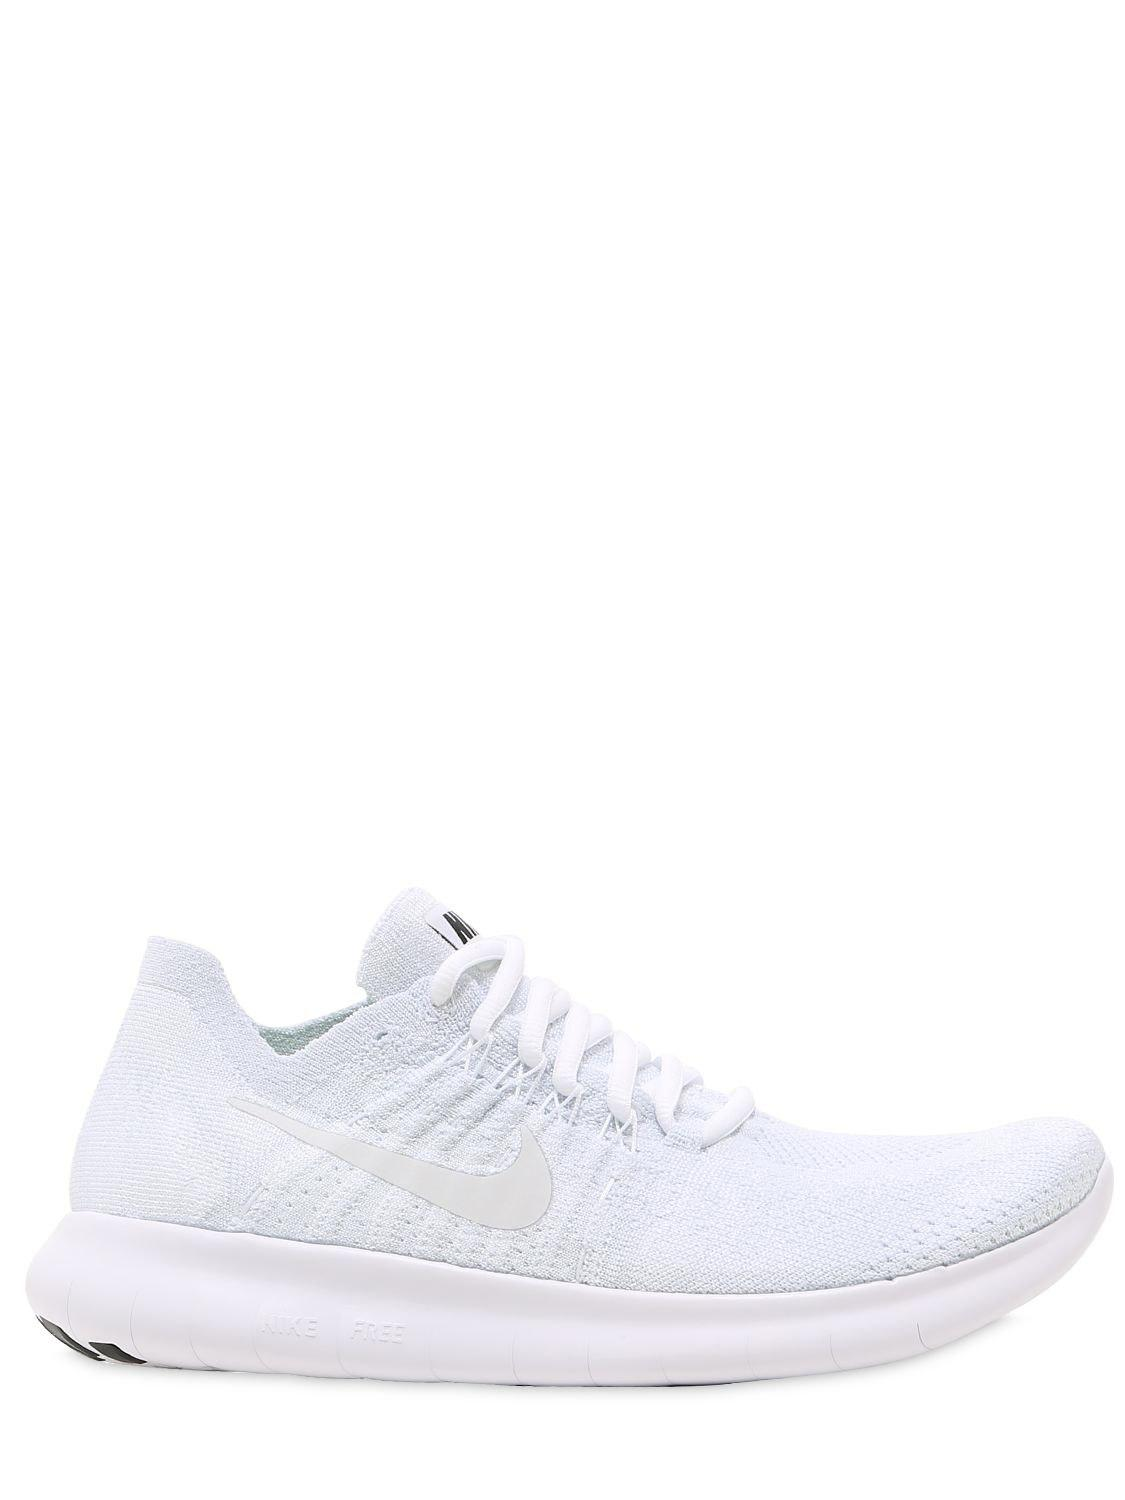 85ecc3ebbc35 Lyst - Nike Free Run 2 Flyknit Sneakers in White